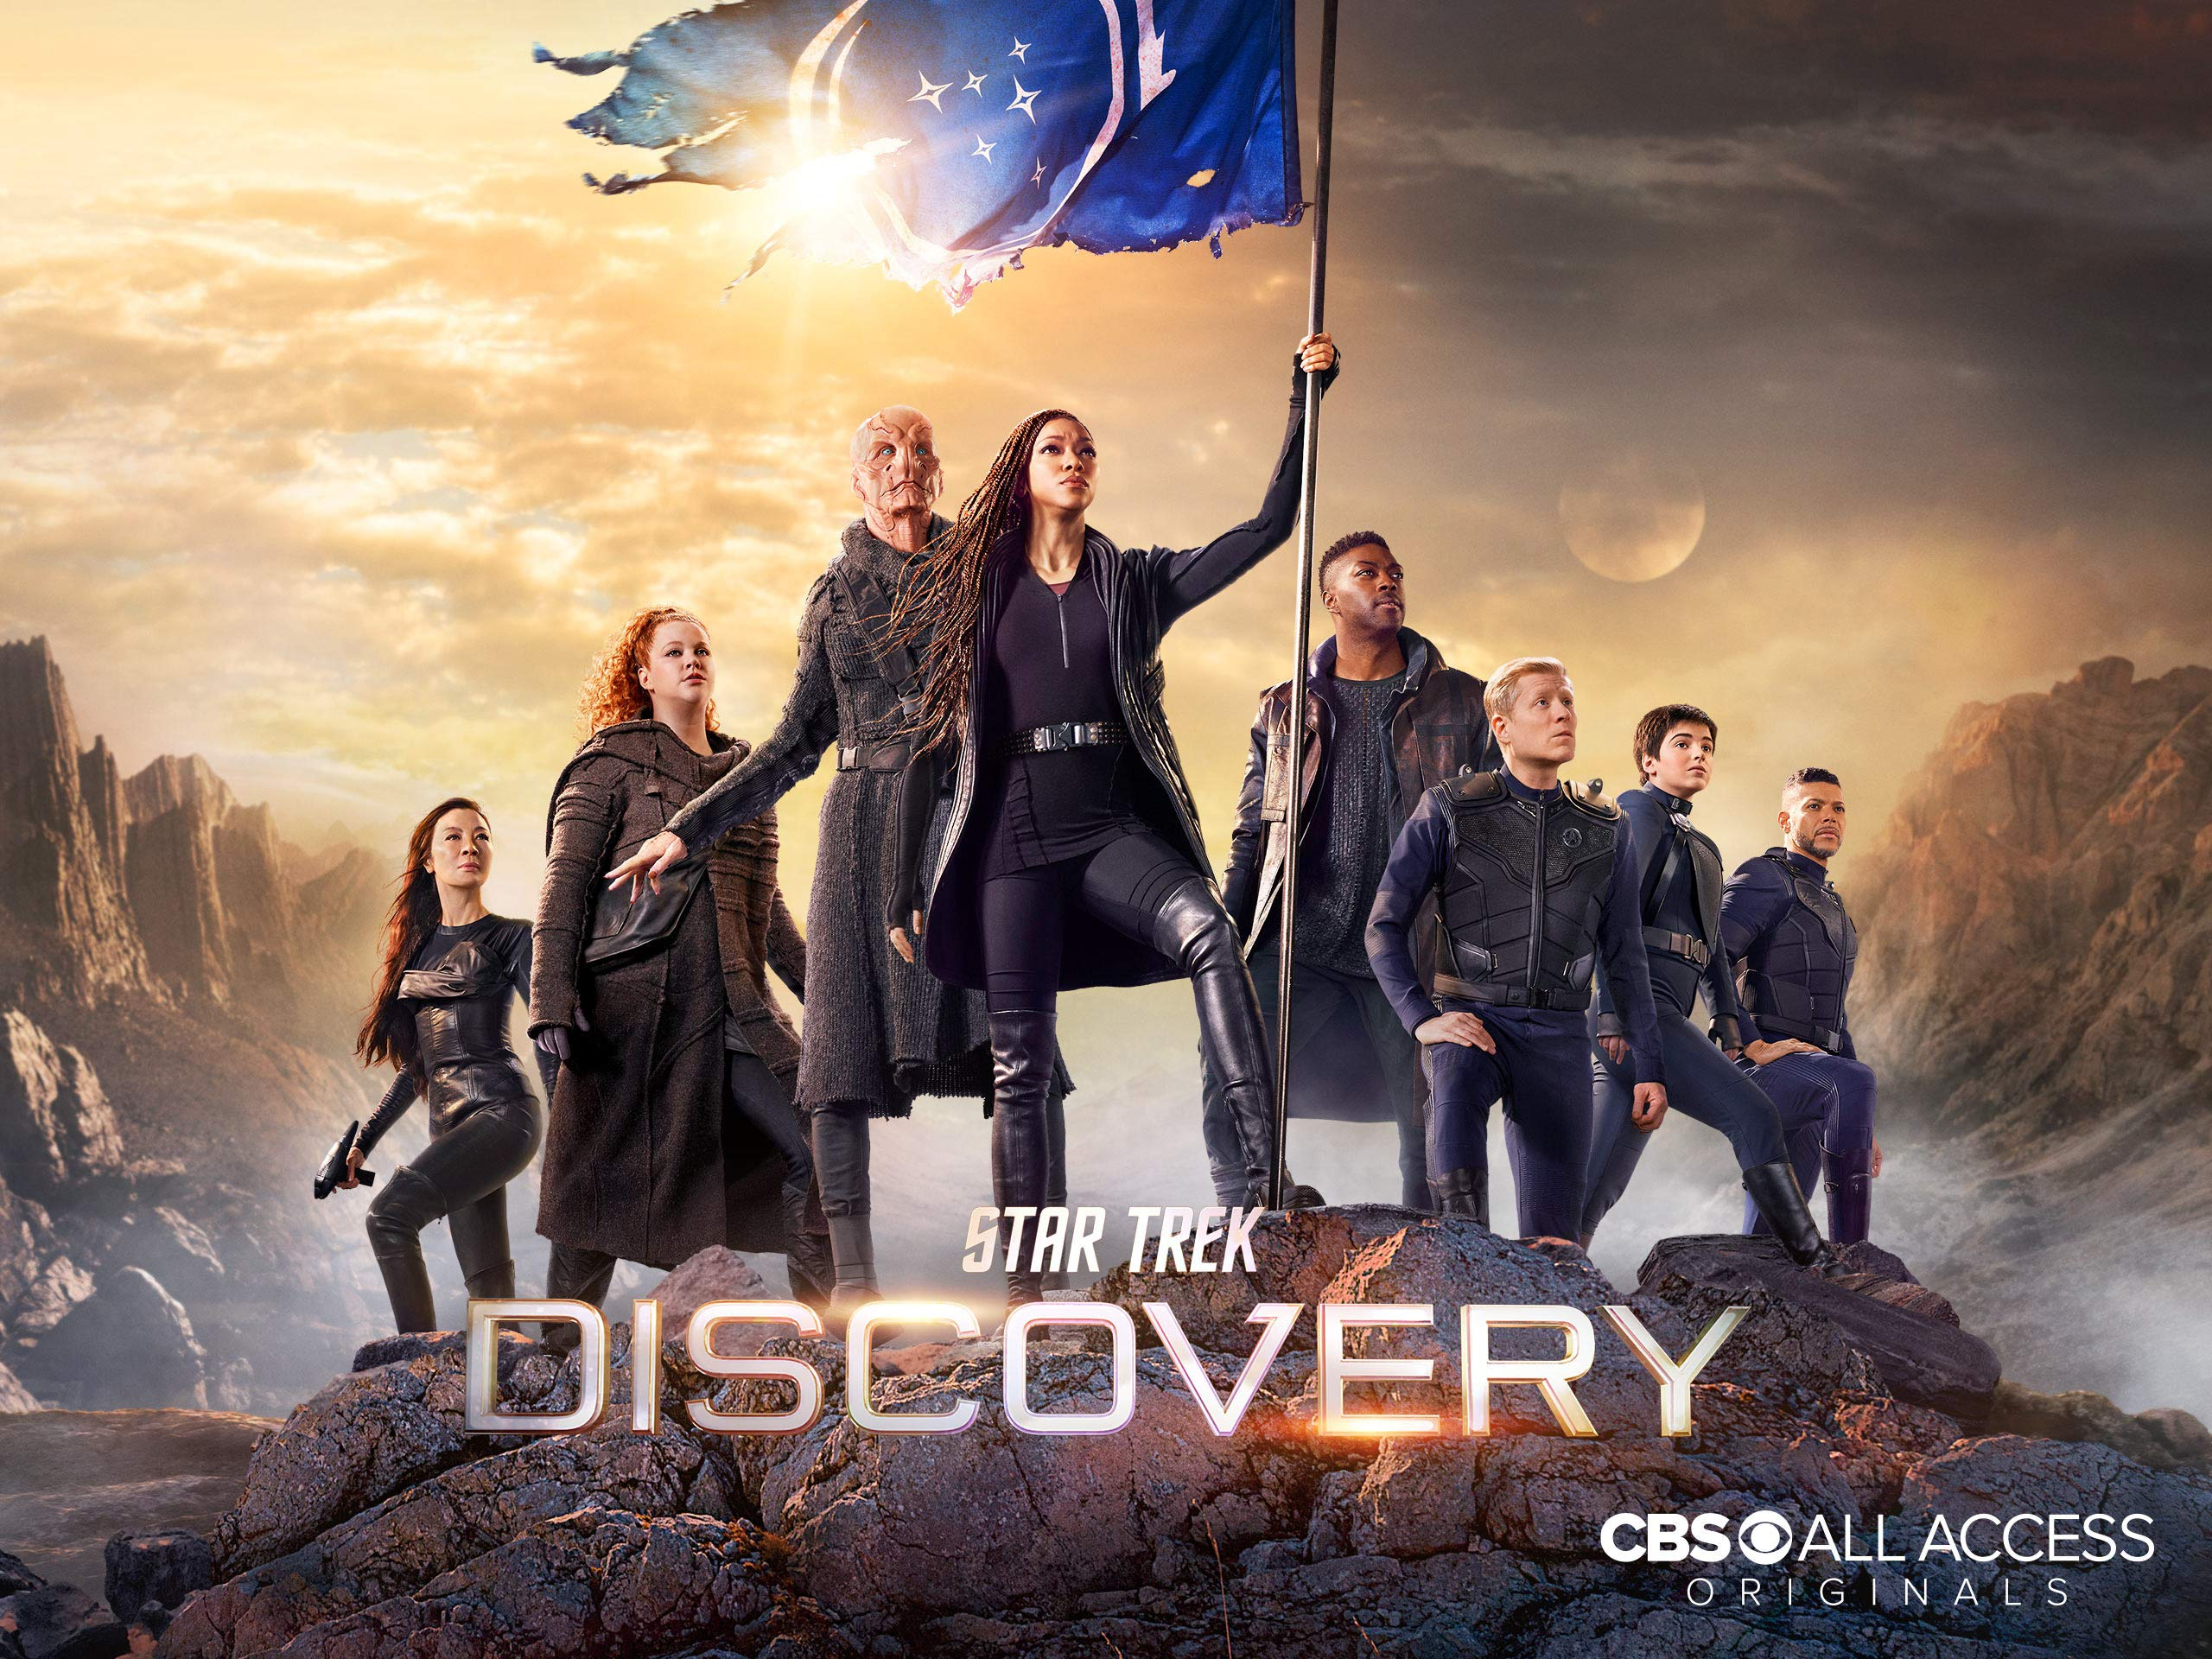 Star Trek: Discovery Season 2 Episode 3 Subtitle (English Srt) Download